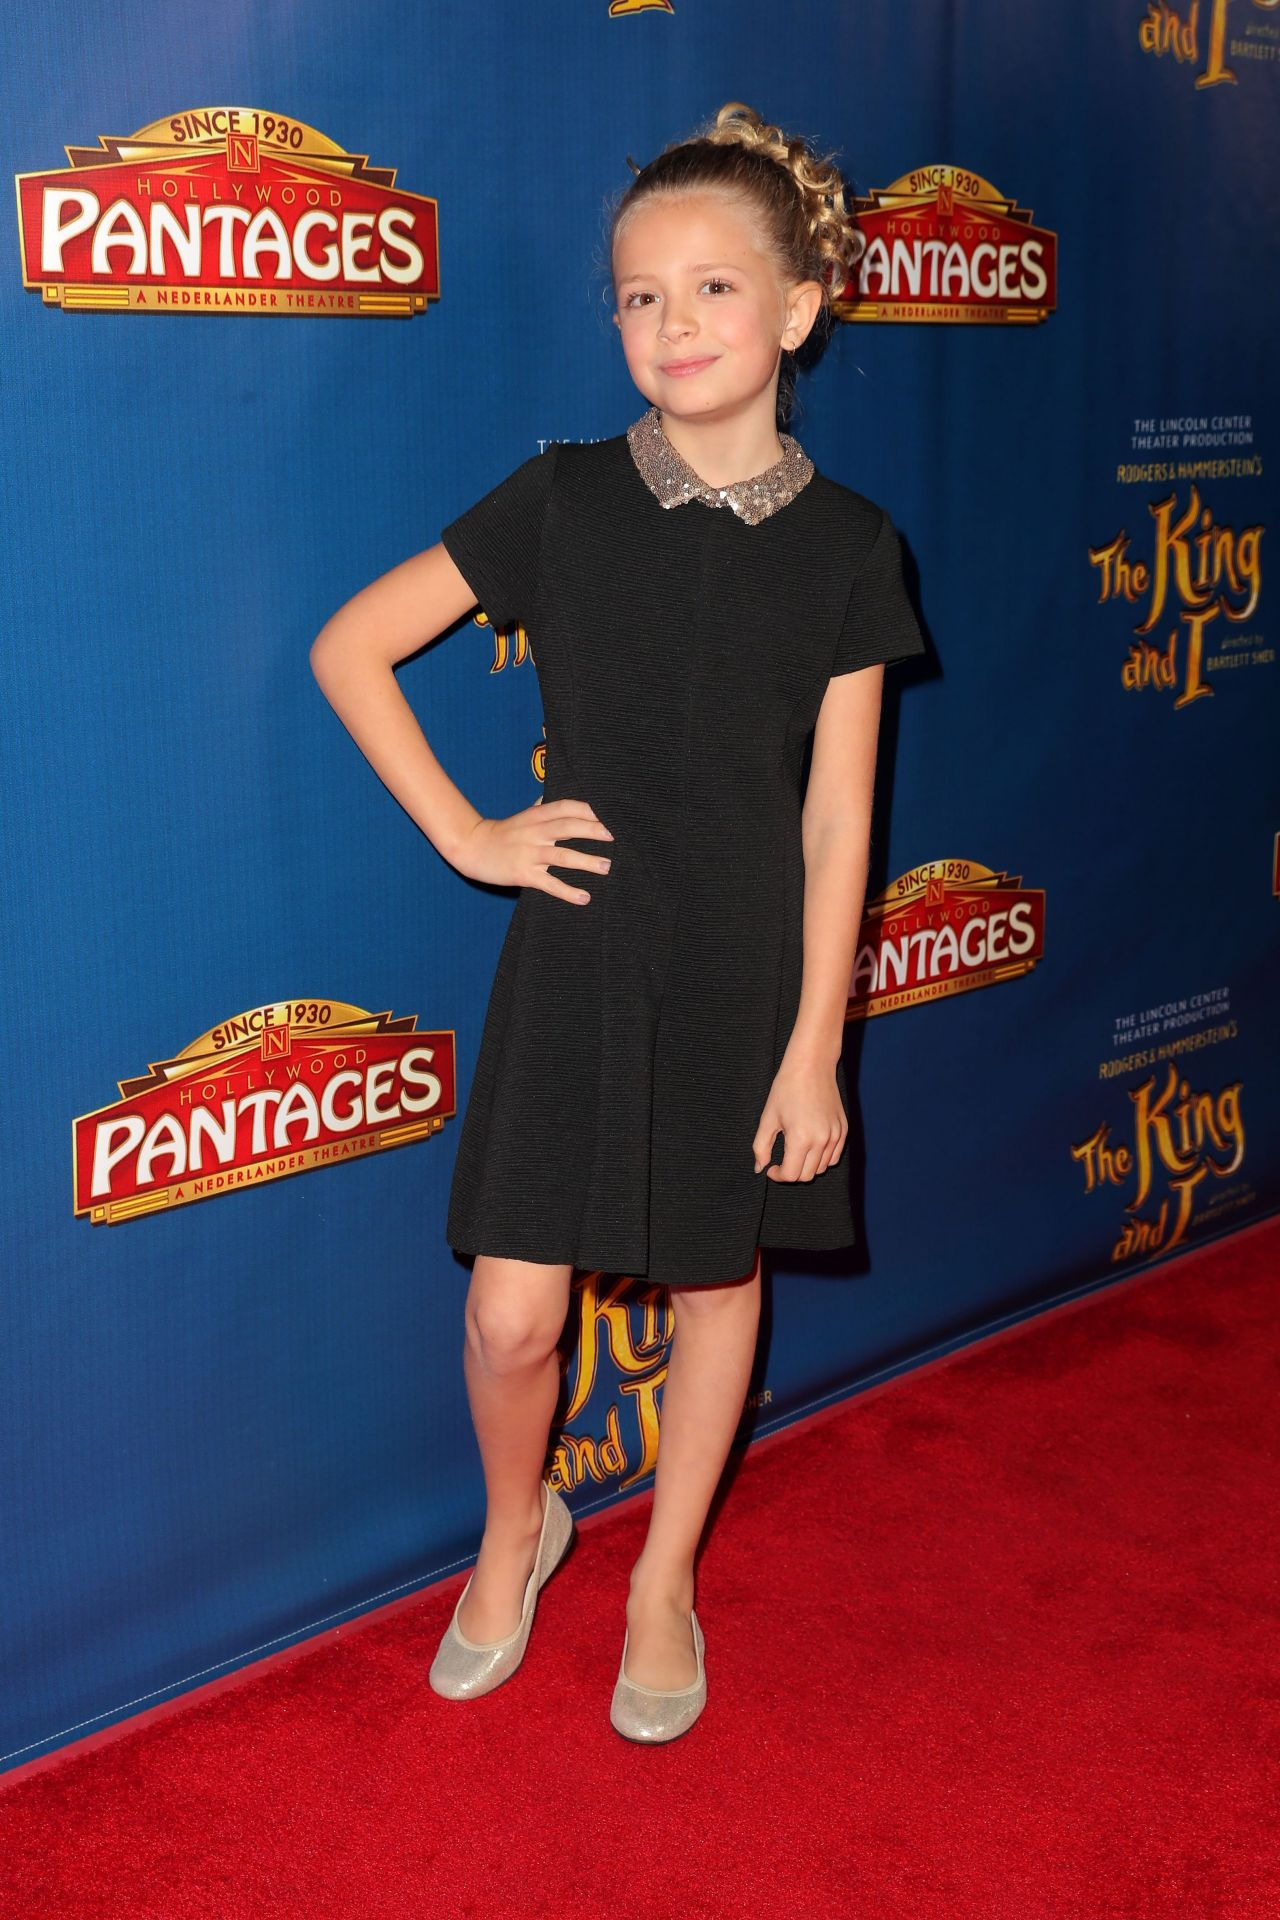 Giselle Eisenberg The King And I Opening Night In Hollywood 12 15 2016